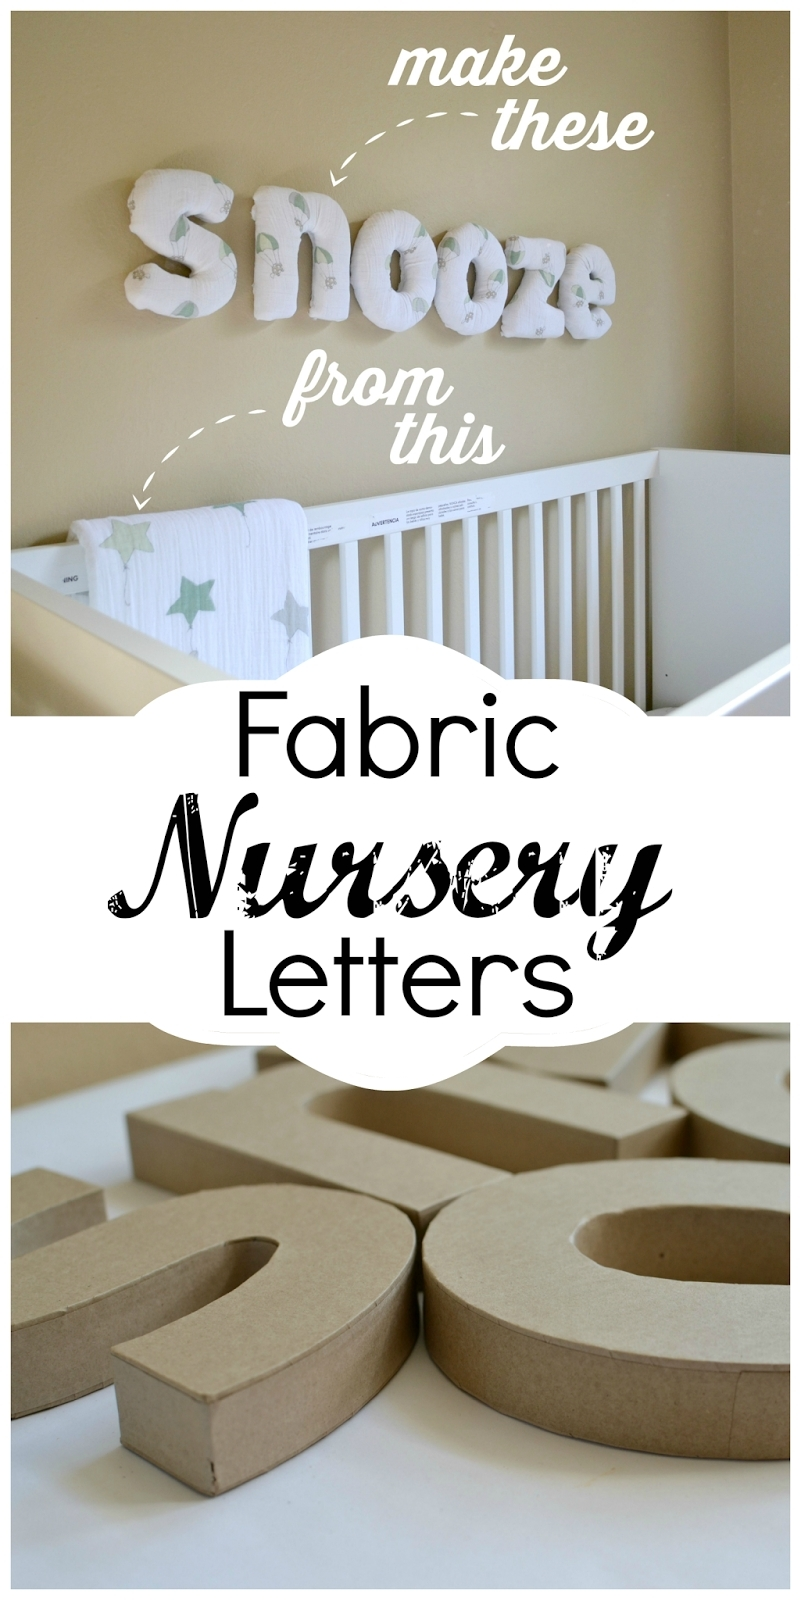 How To Make Easy Diy Fabric Letters For Your Nursery | Fabric In Most Up To Date Fabric Wall Art Letters (View 11 of 15)